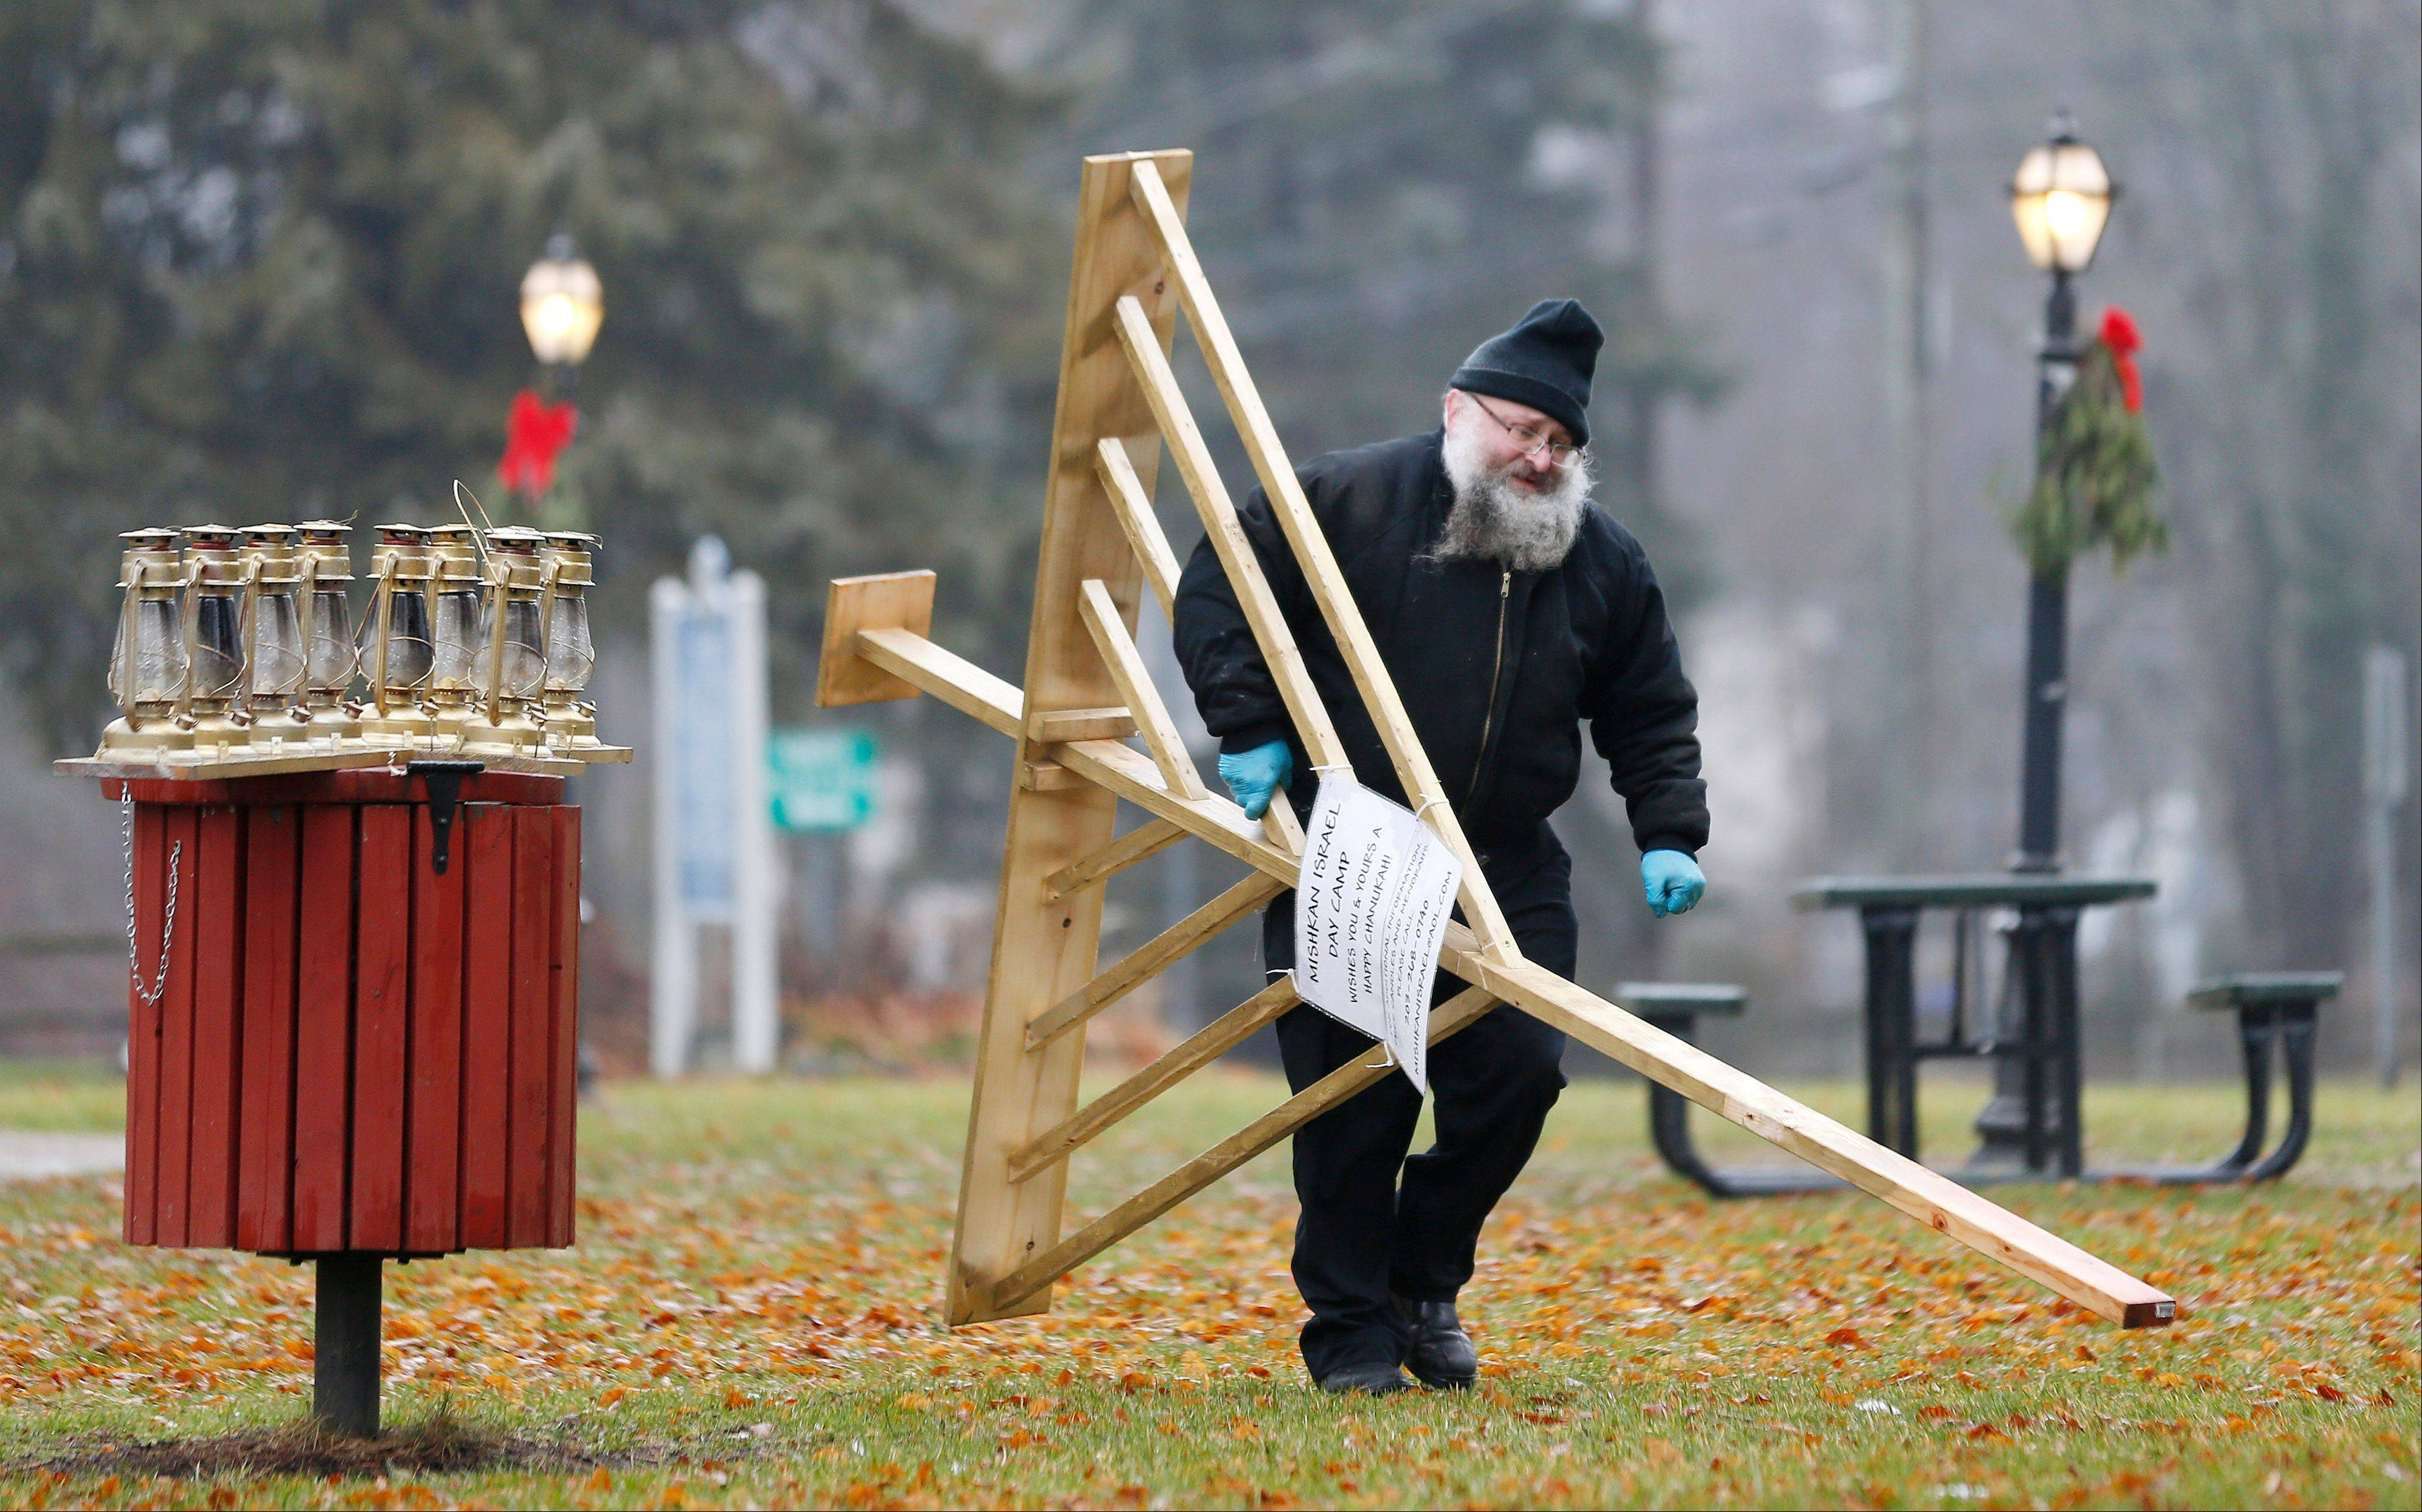 Rabbi Joseph Stock breaks down a Menorah at the completion of Hanukkah in the town square area of Monroe, Conn., where shooting victim Noah Pozner will be buried later in the day, Monday, Dec. 17, 2012. Stock will attend the burial services for the 6-year-old at B'nai Israel Cemetery. On Friday, a gunman allegedly killed his mother at their home and then opened fire inside the Sandy Hook Elementary School in Newtown, killing 26 people, including 20 children.